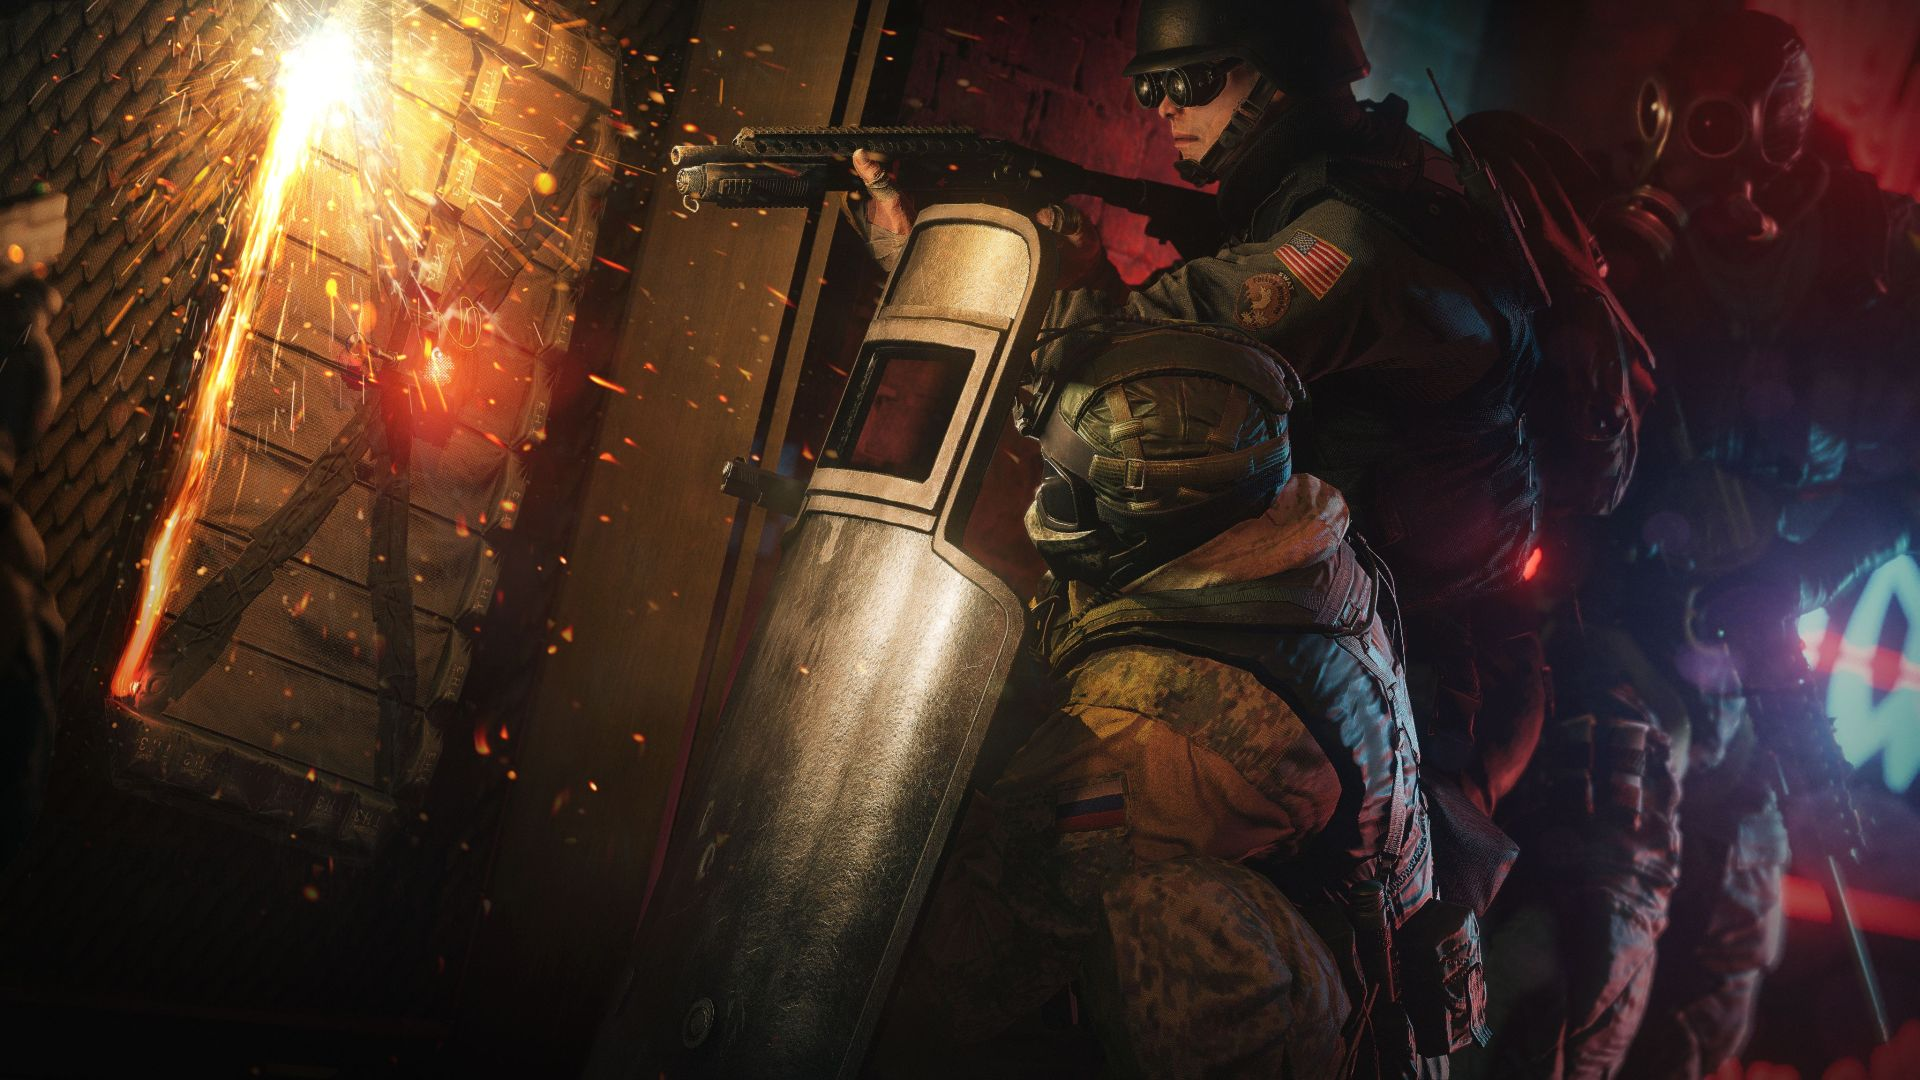 r6s preview2015 thermite 4k final 1444850811 100623077 orig